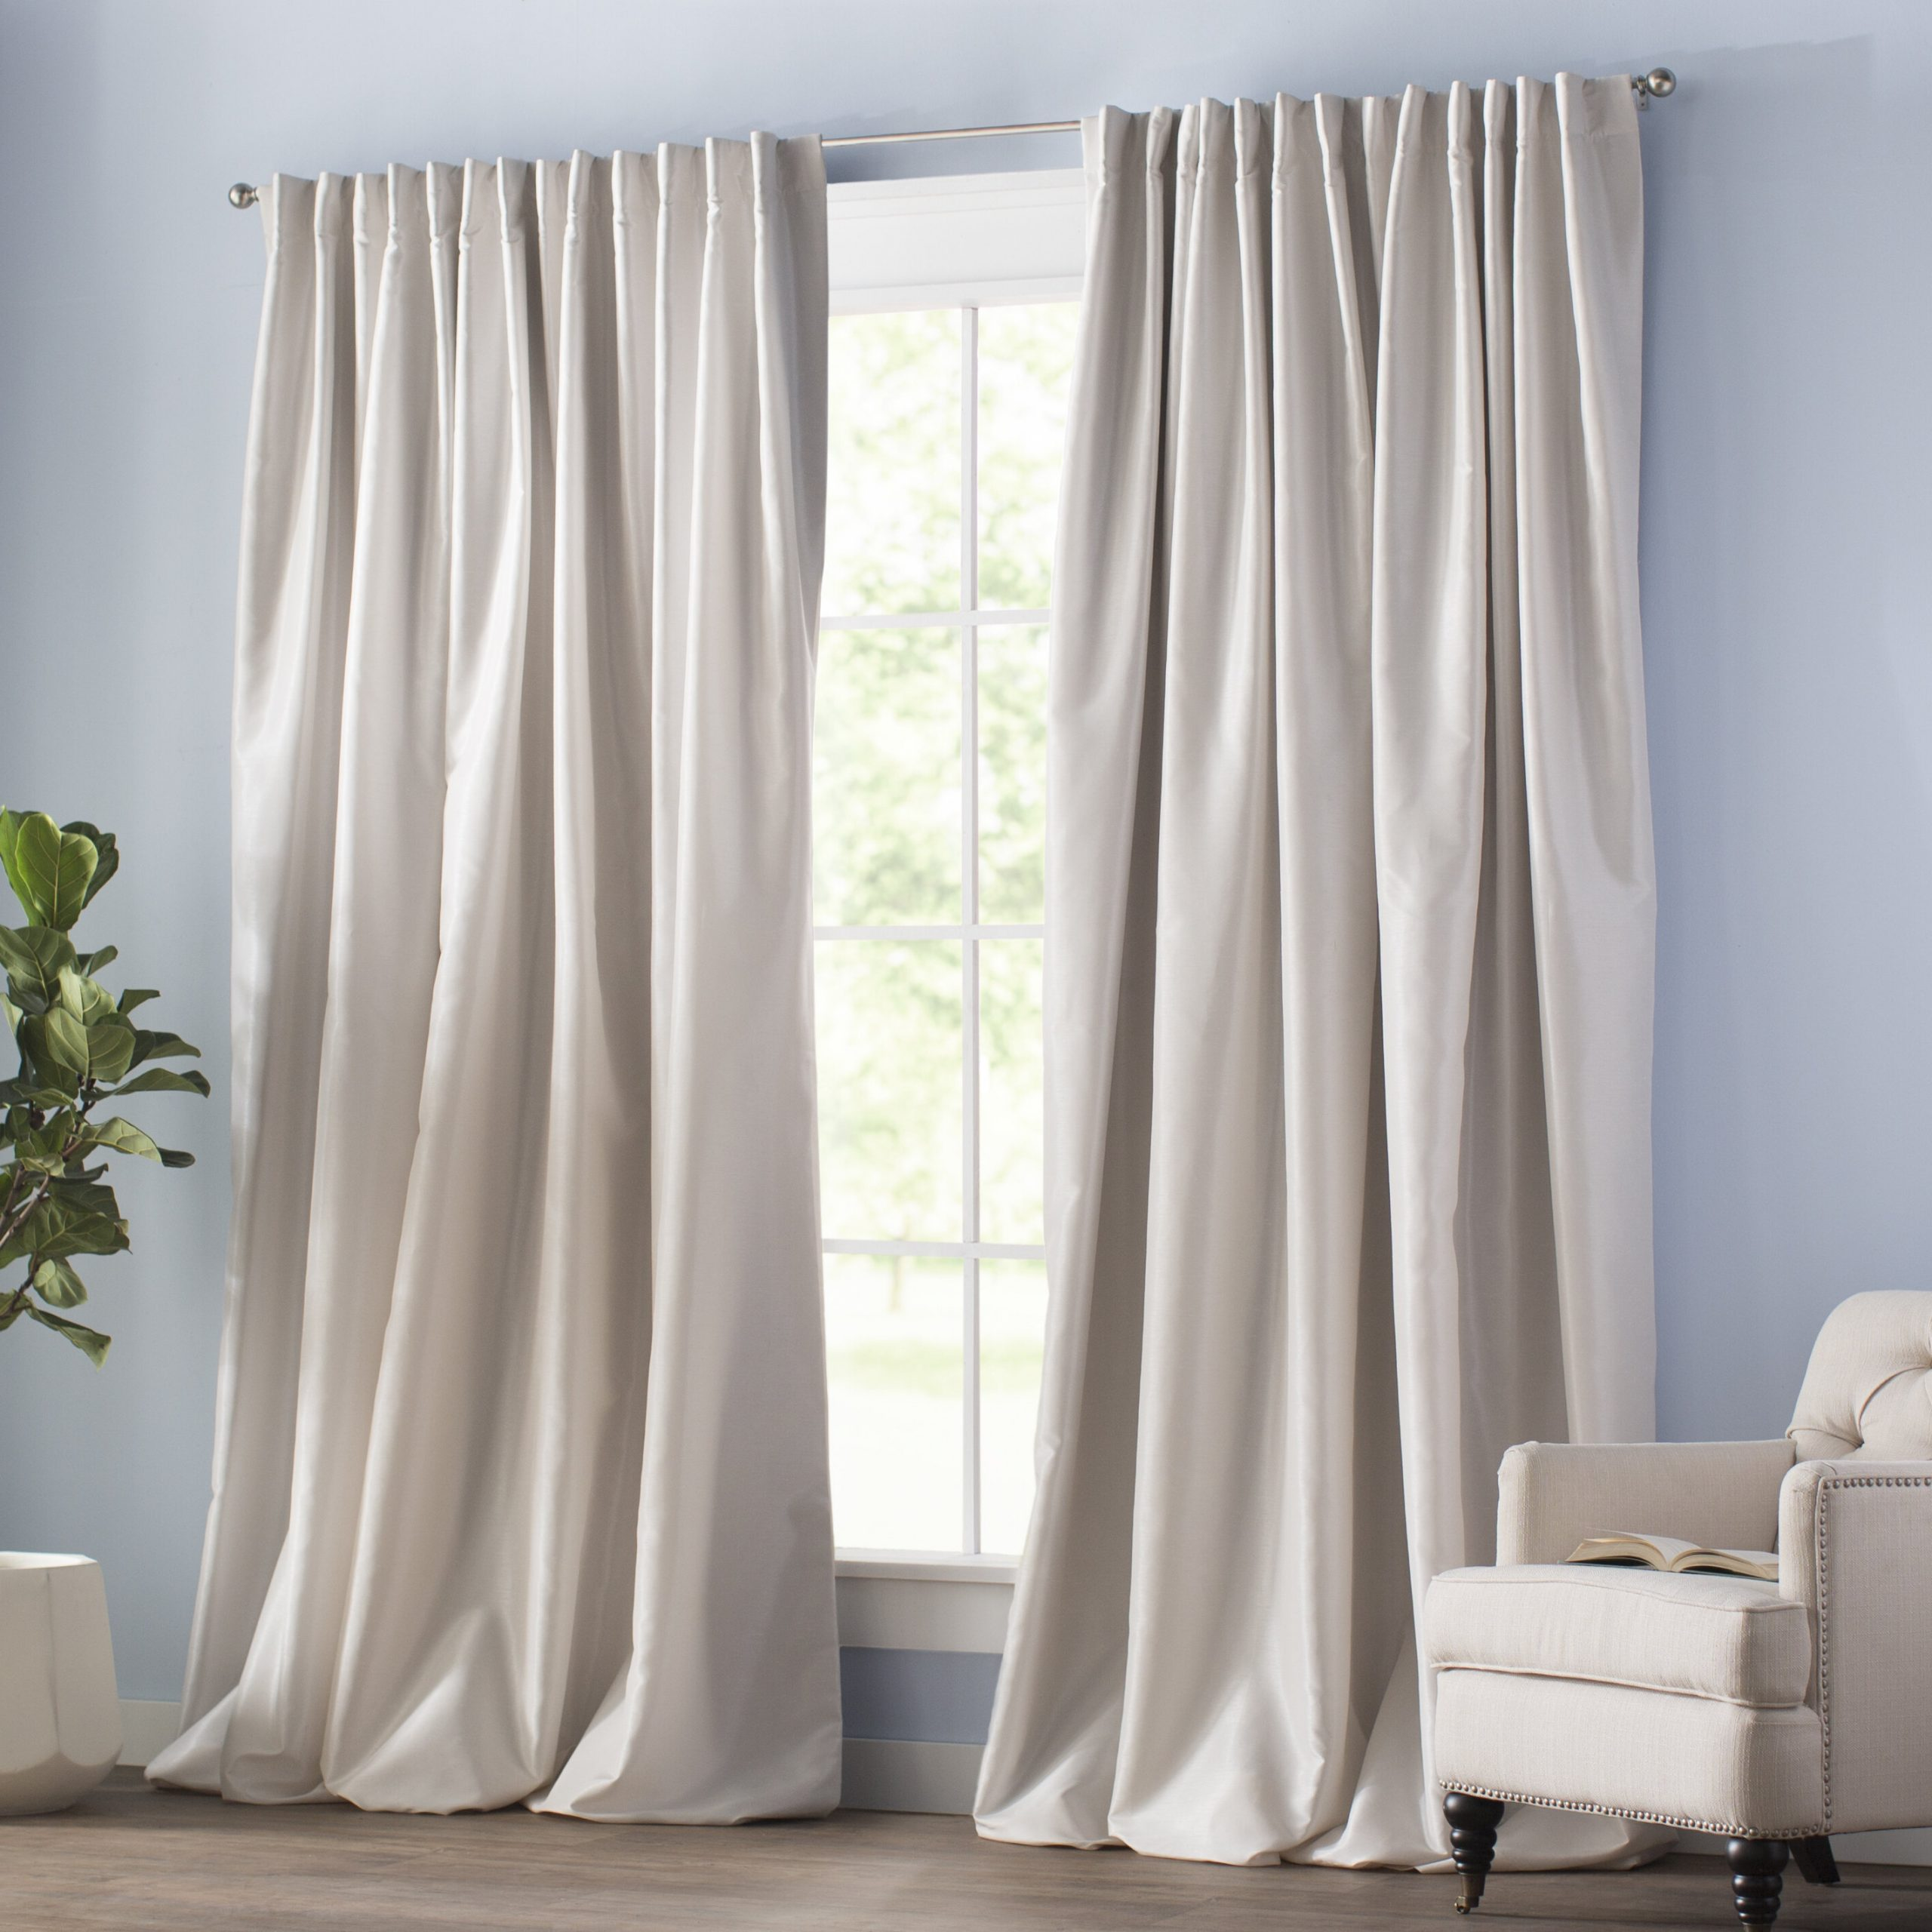 Most Popular Thermal Rod Pocket Blackout Curtain Panel Pairs With Regard To Bahari Blackout Thermal Rod Pocket Single Curtain Panel (View 5 of 20)